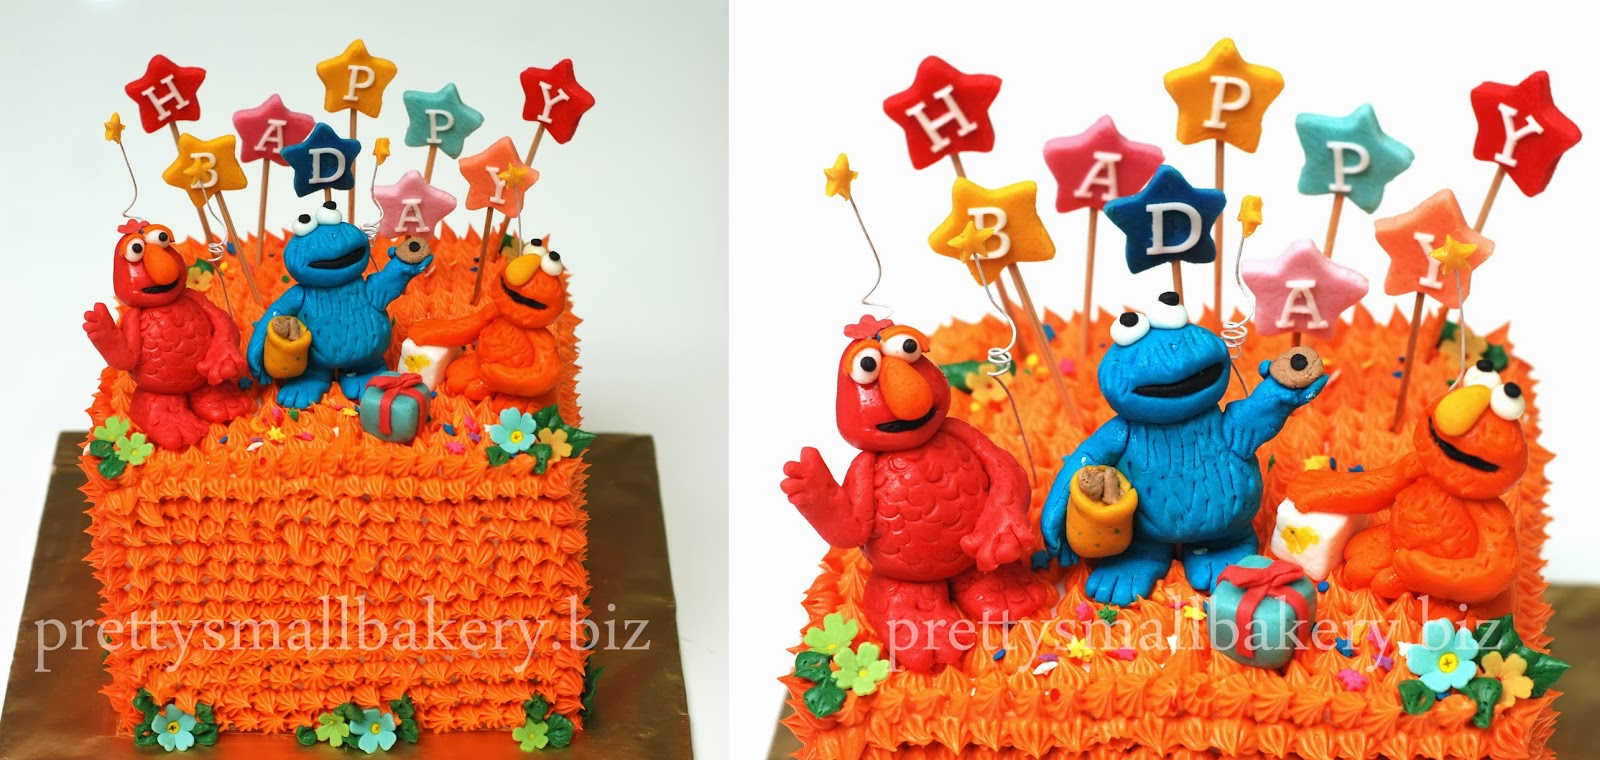 Kek Elmo And Frens Prettysmallbakery